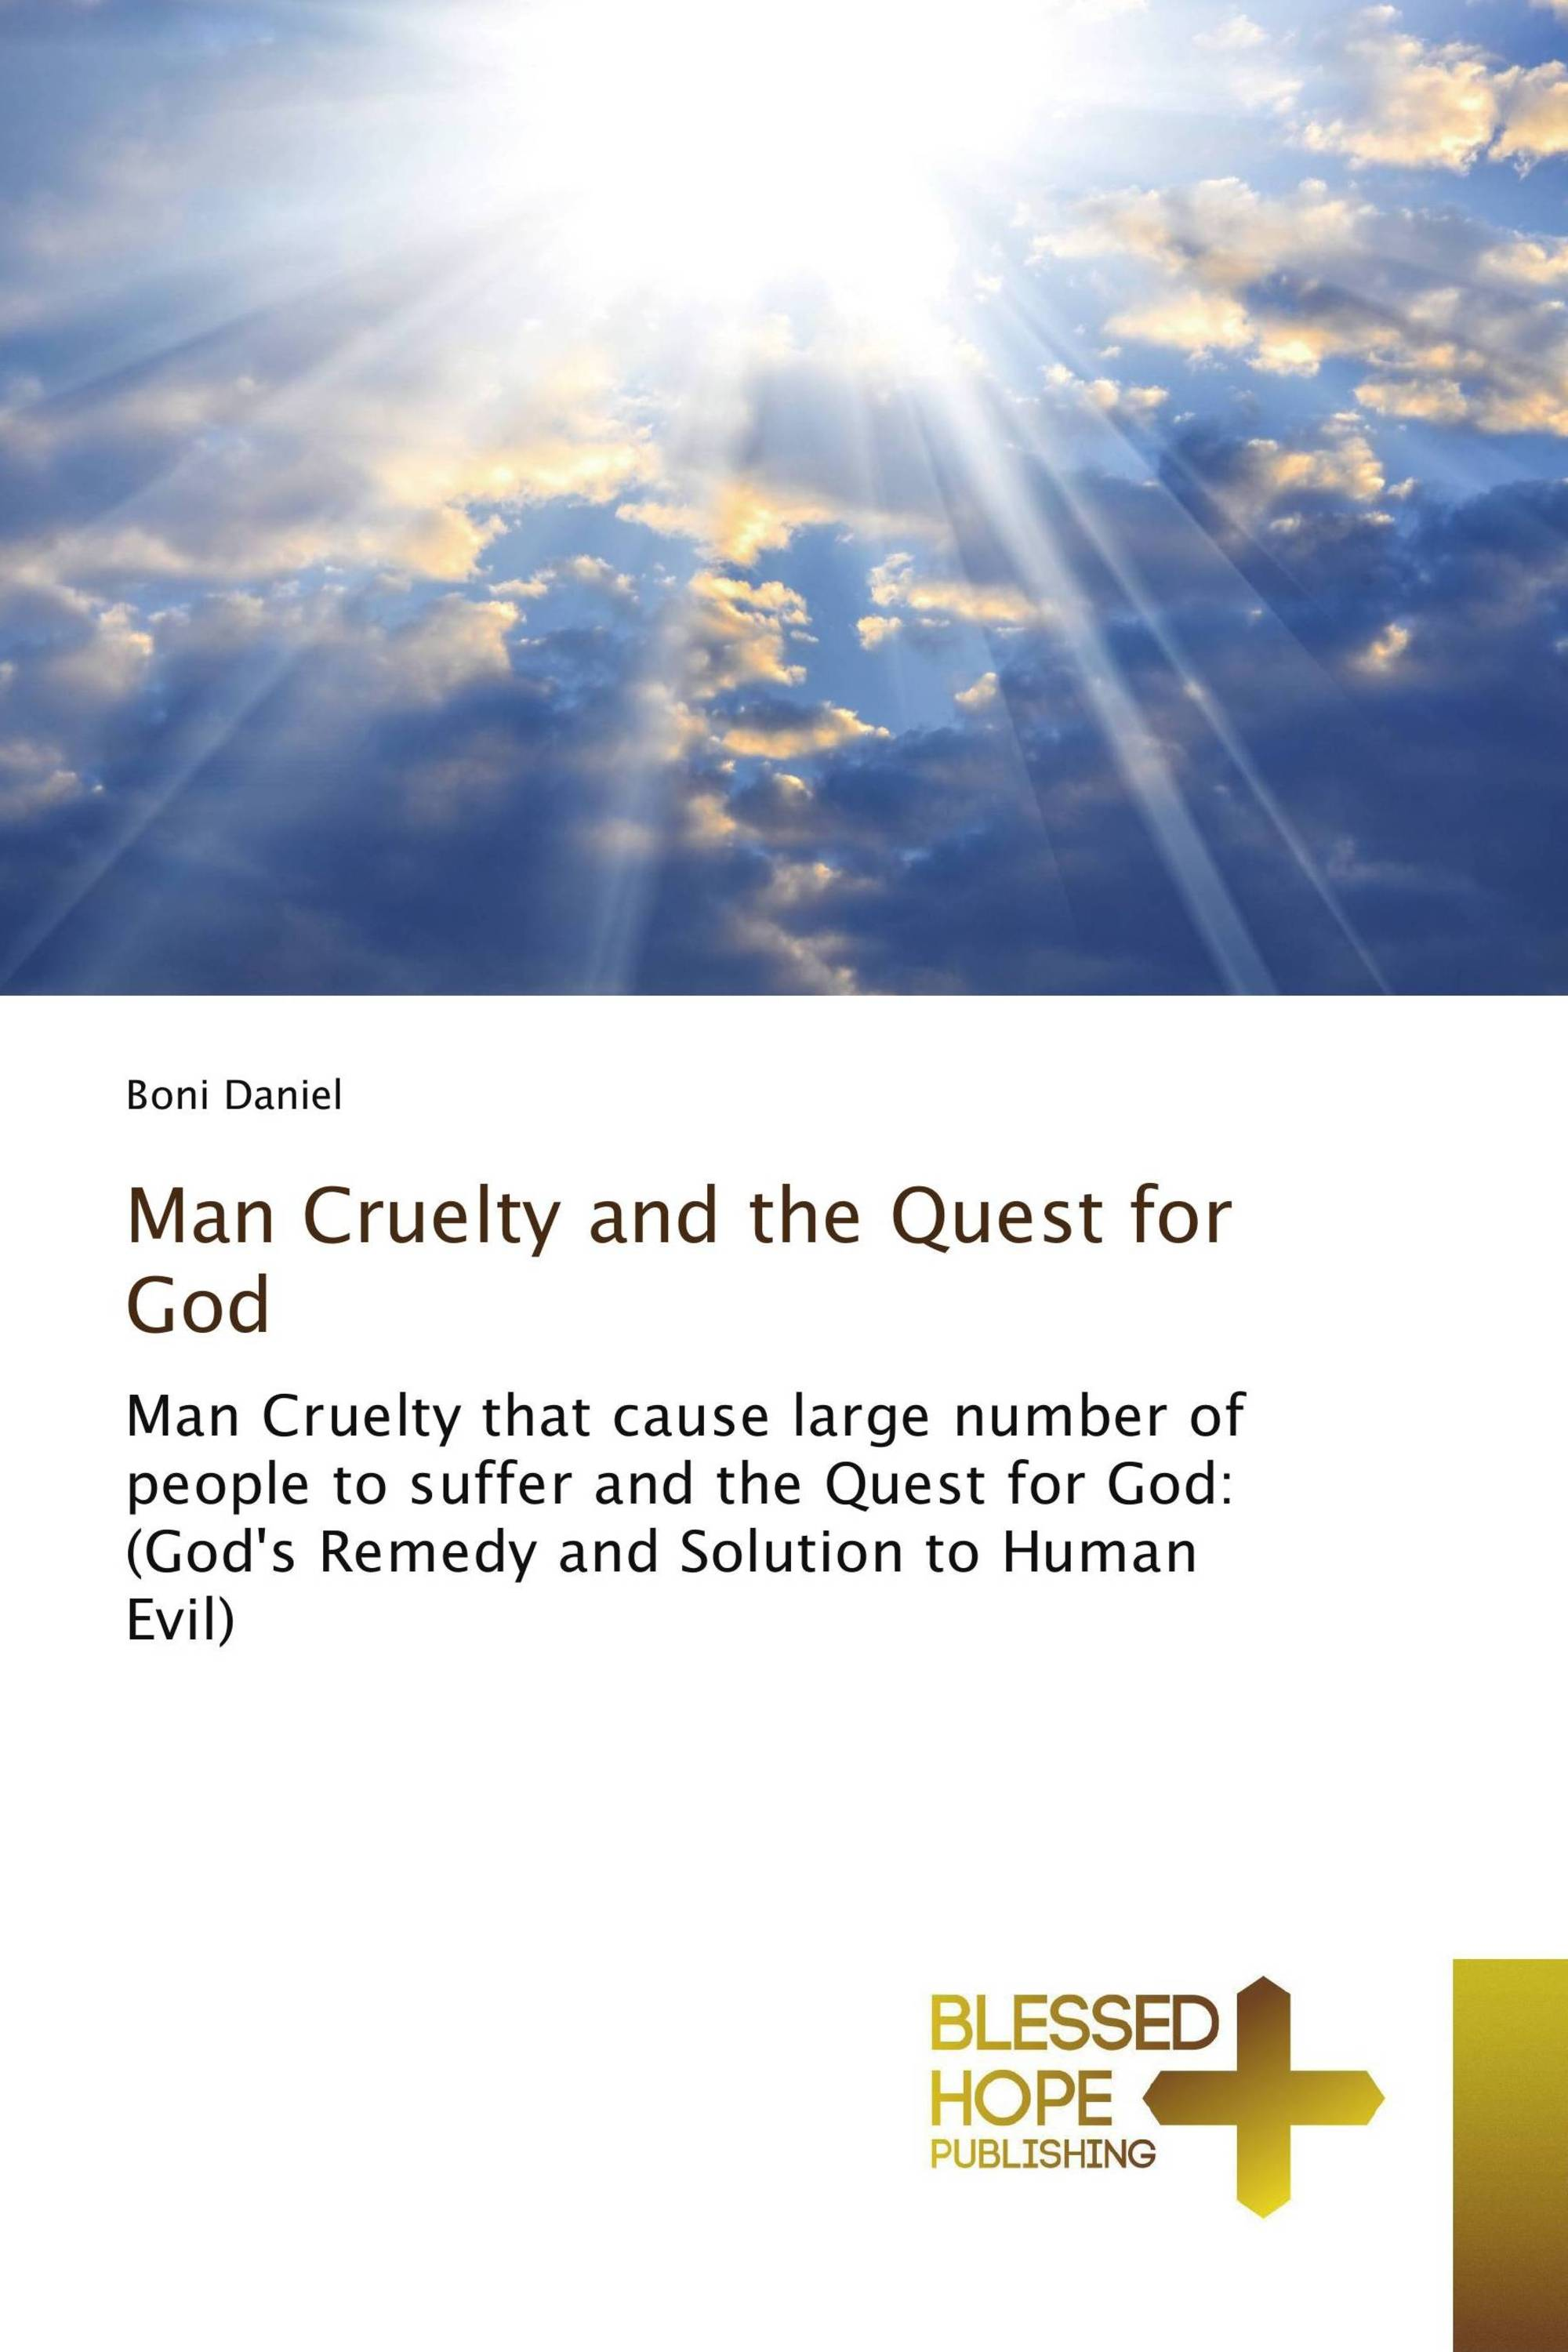 Man Cruelty and the Quest for God